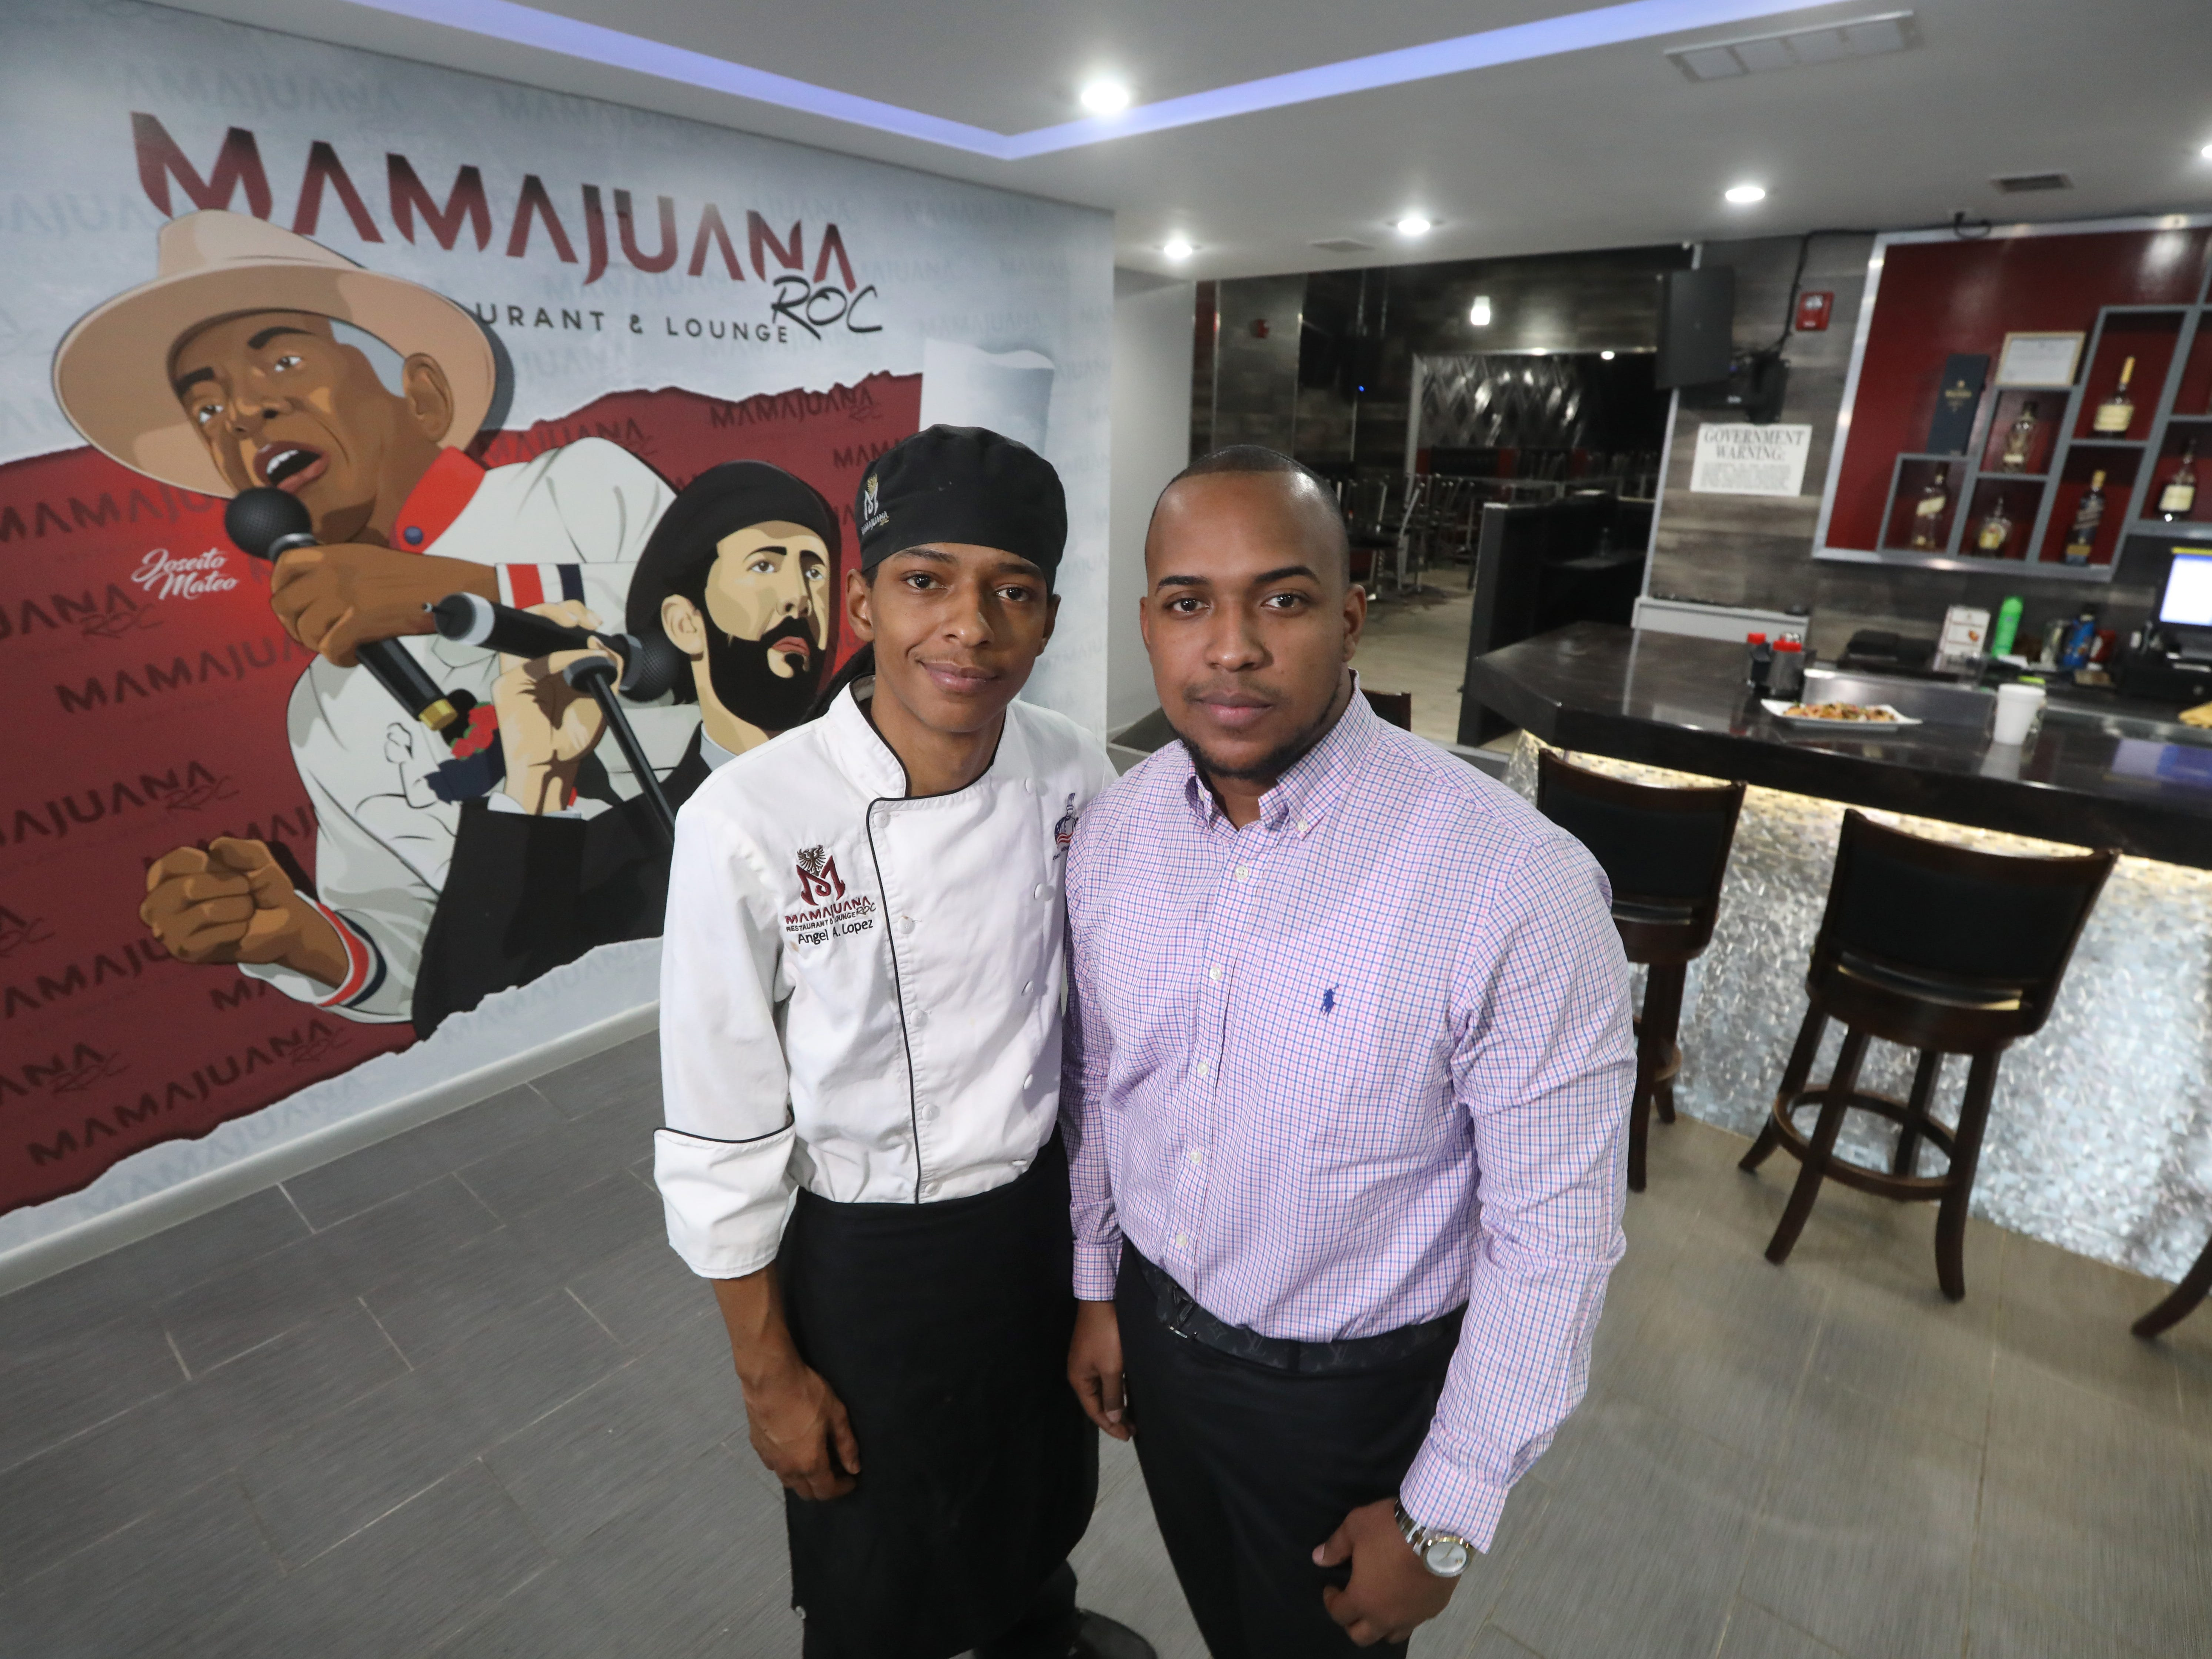 Brothers Angel Lopez, left, and Marcos Lopez, right, work together at MamaJuana Restaurant and Lounge in Rochester.